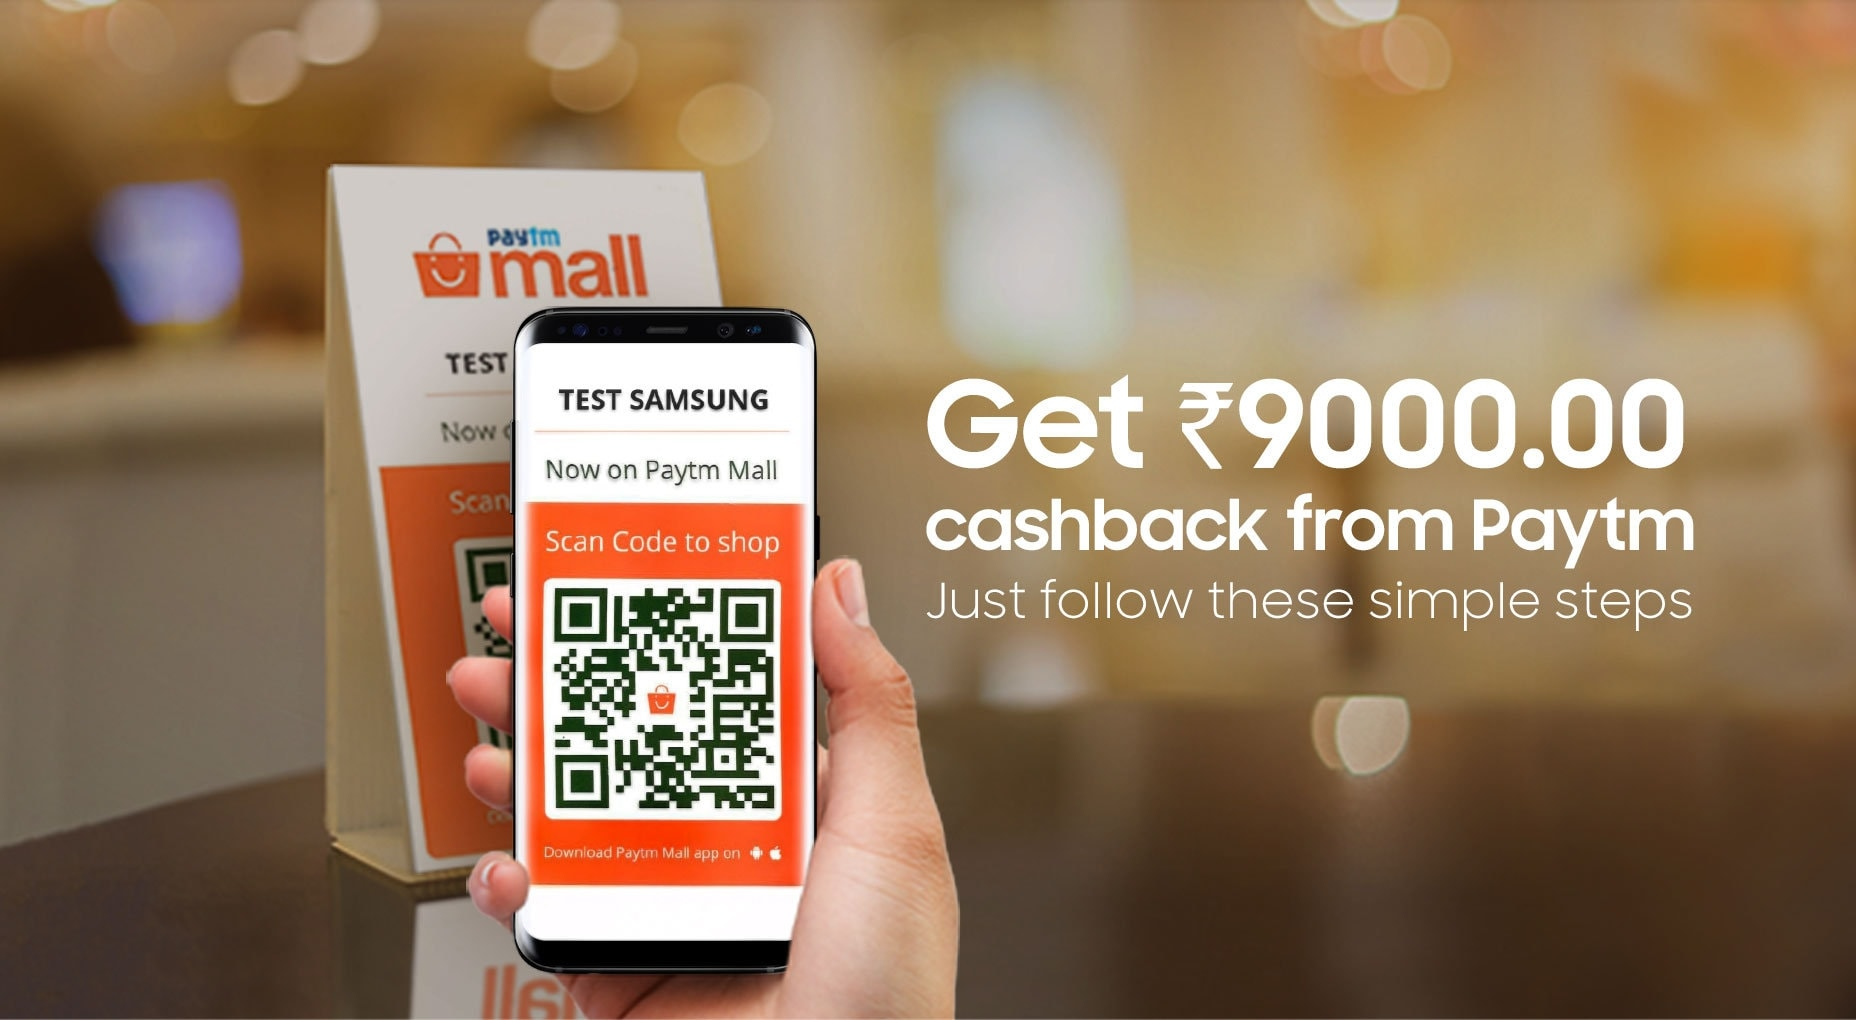 Buy Samsung Galaxy S9 and get upto Rs. 9000 Cashback on Paytm Mall